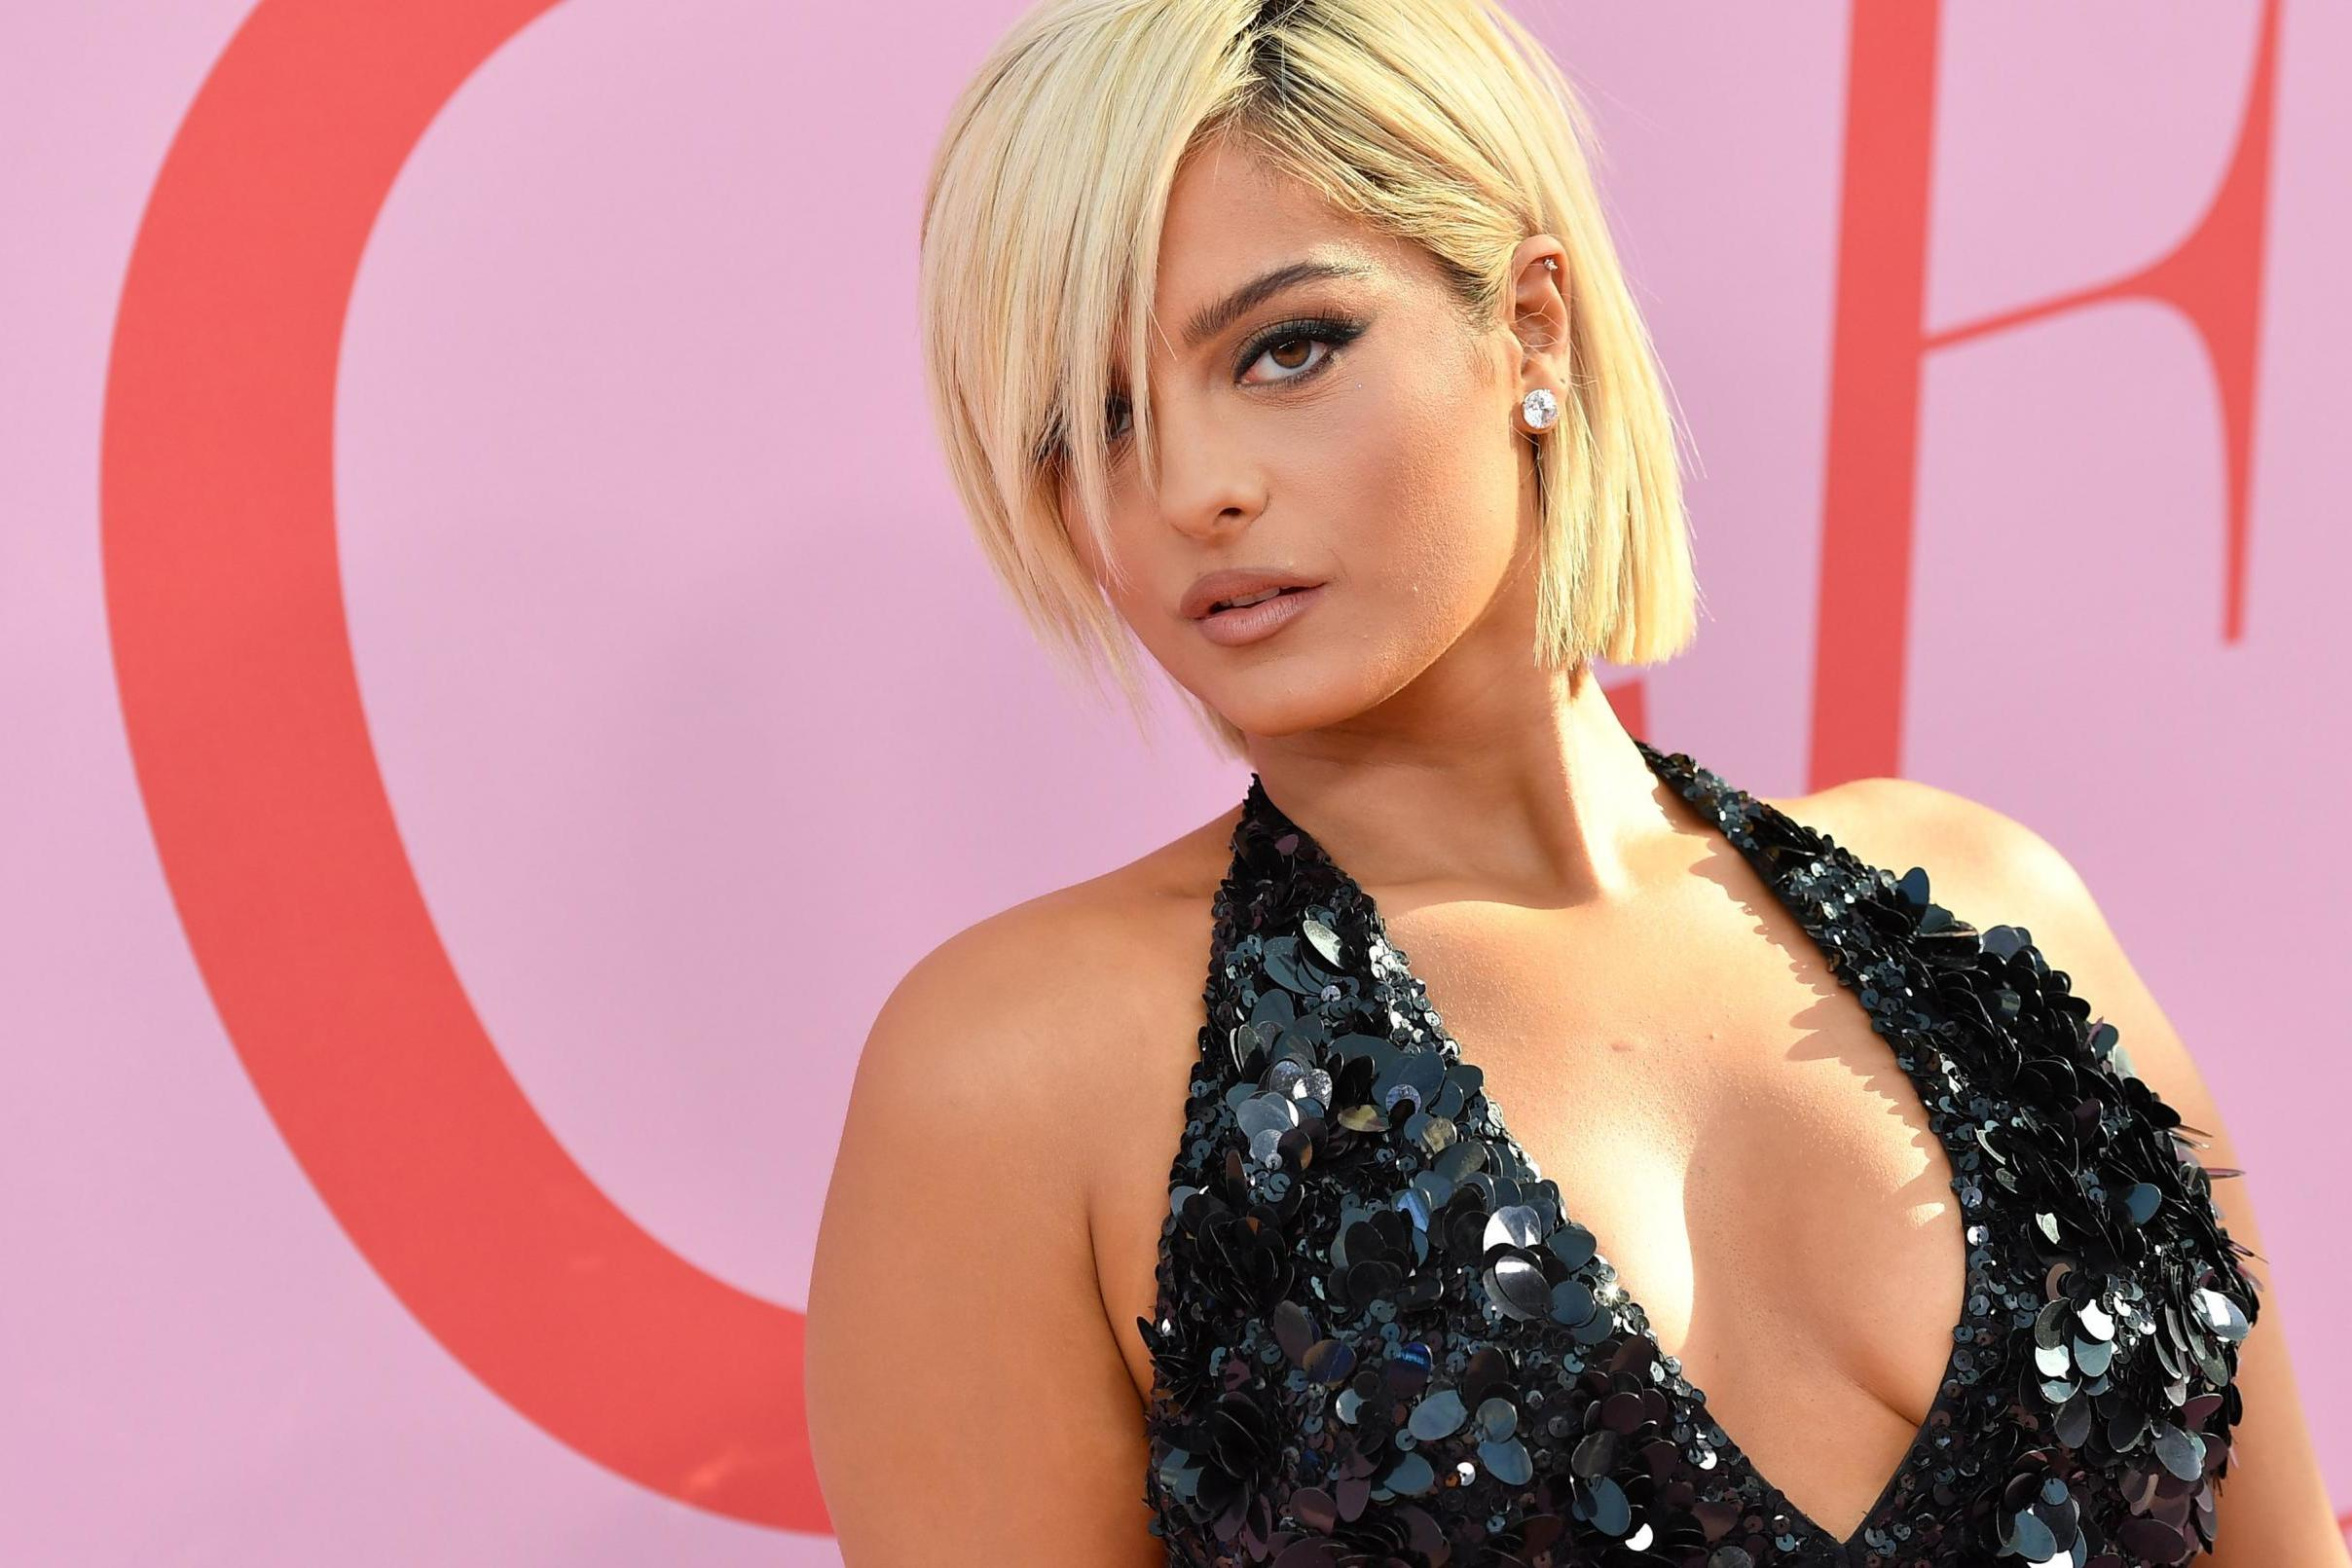 Bebe Rexha hits back at trolls who called her 'tubby'